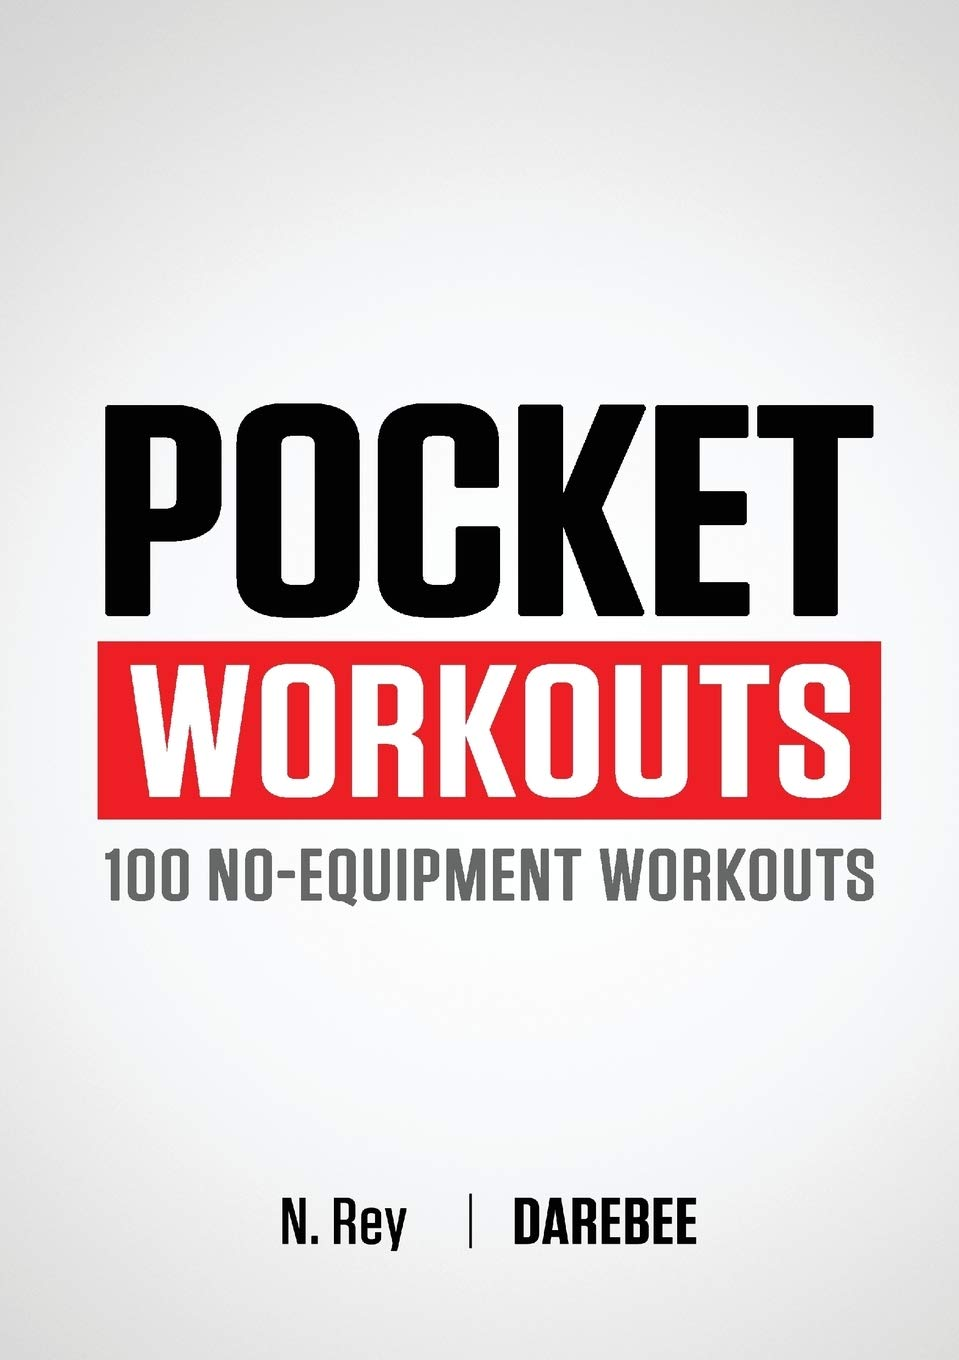 Pocket Workouts - 100 Darebee, no-equipment workouts: Train any time, anywhere without a gym or special equipment 1